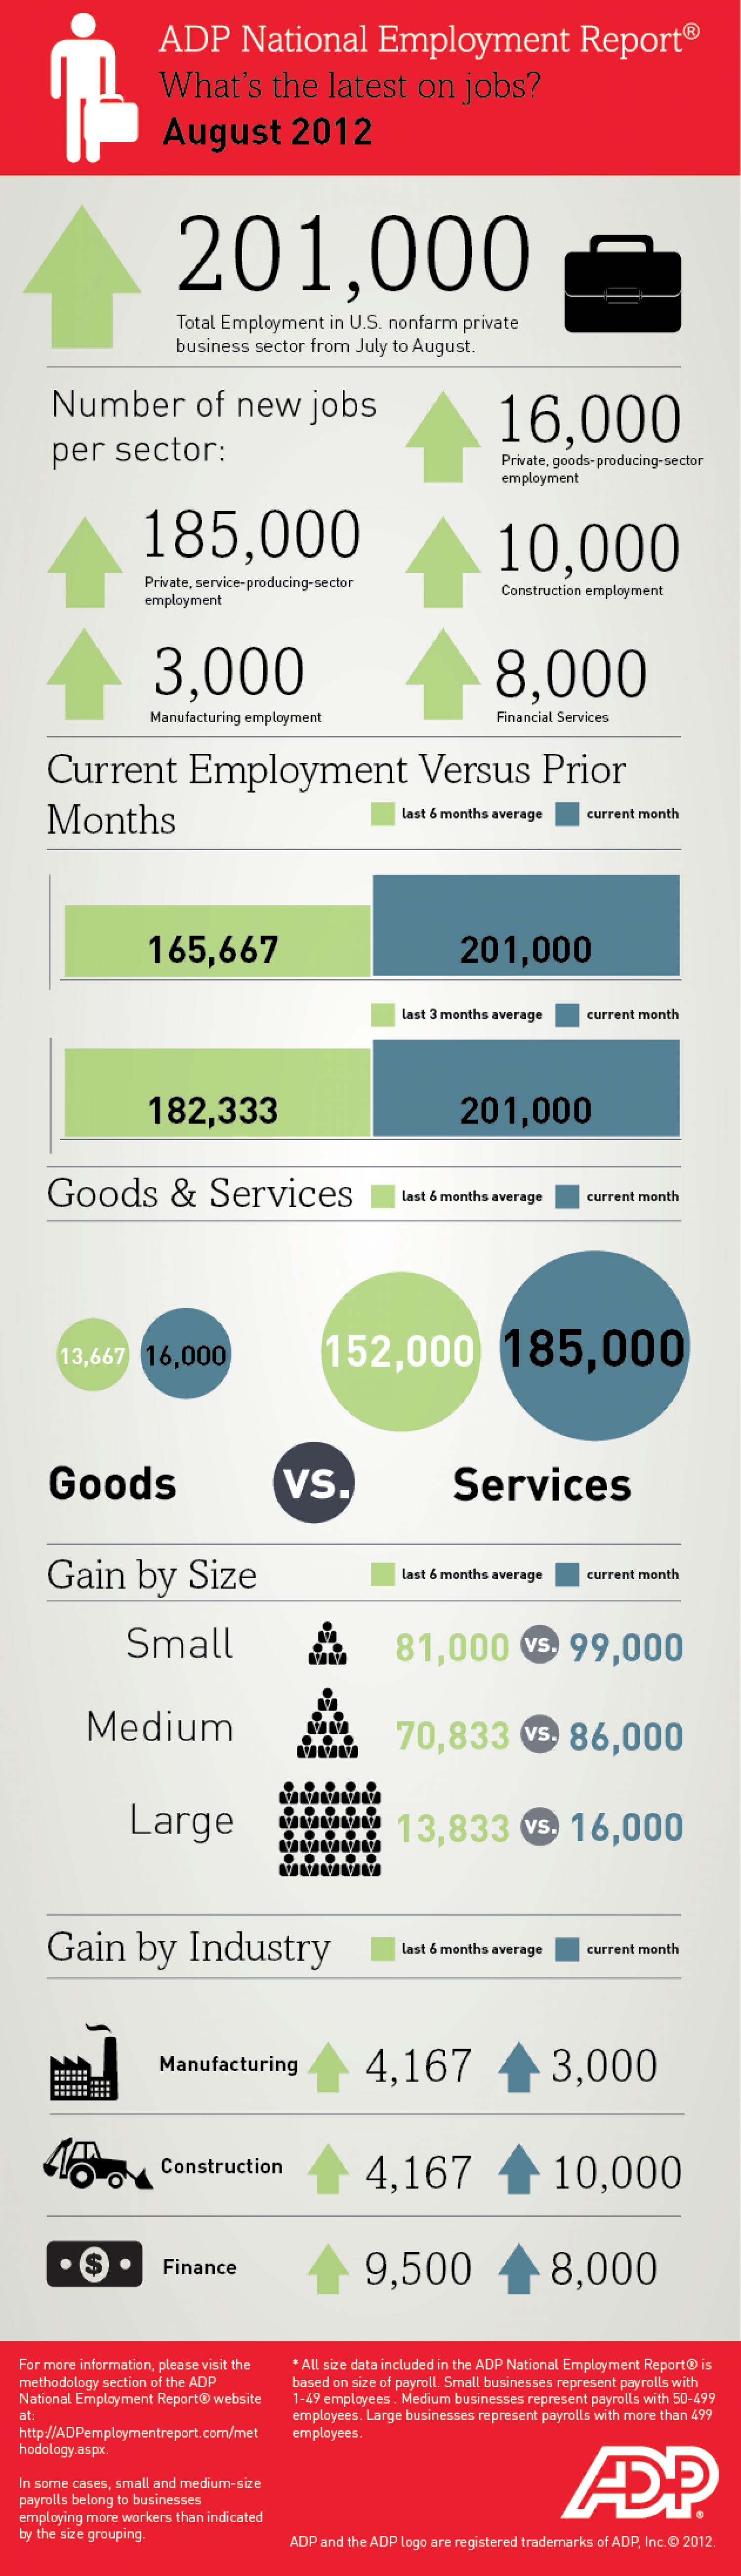 National Employment Report - August 2012 Infographic